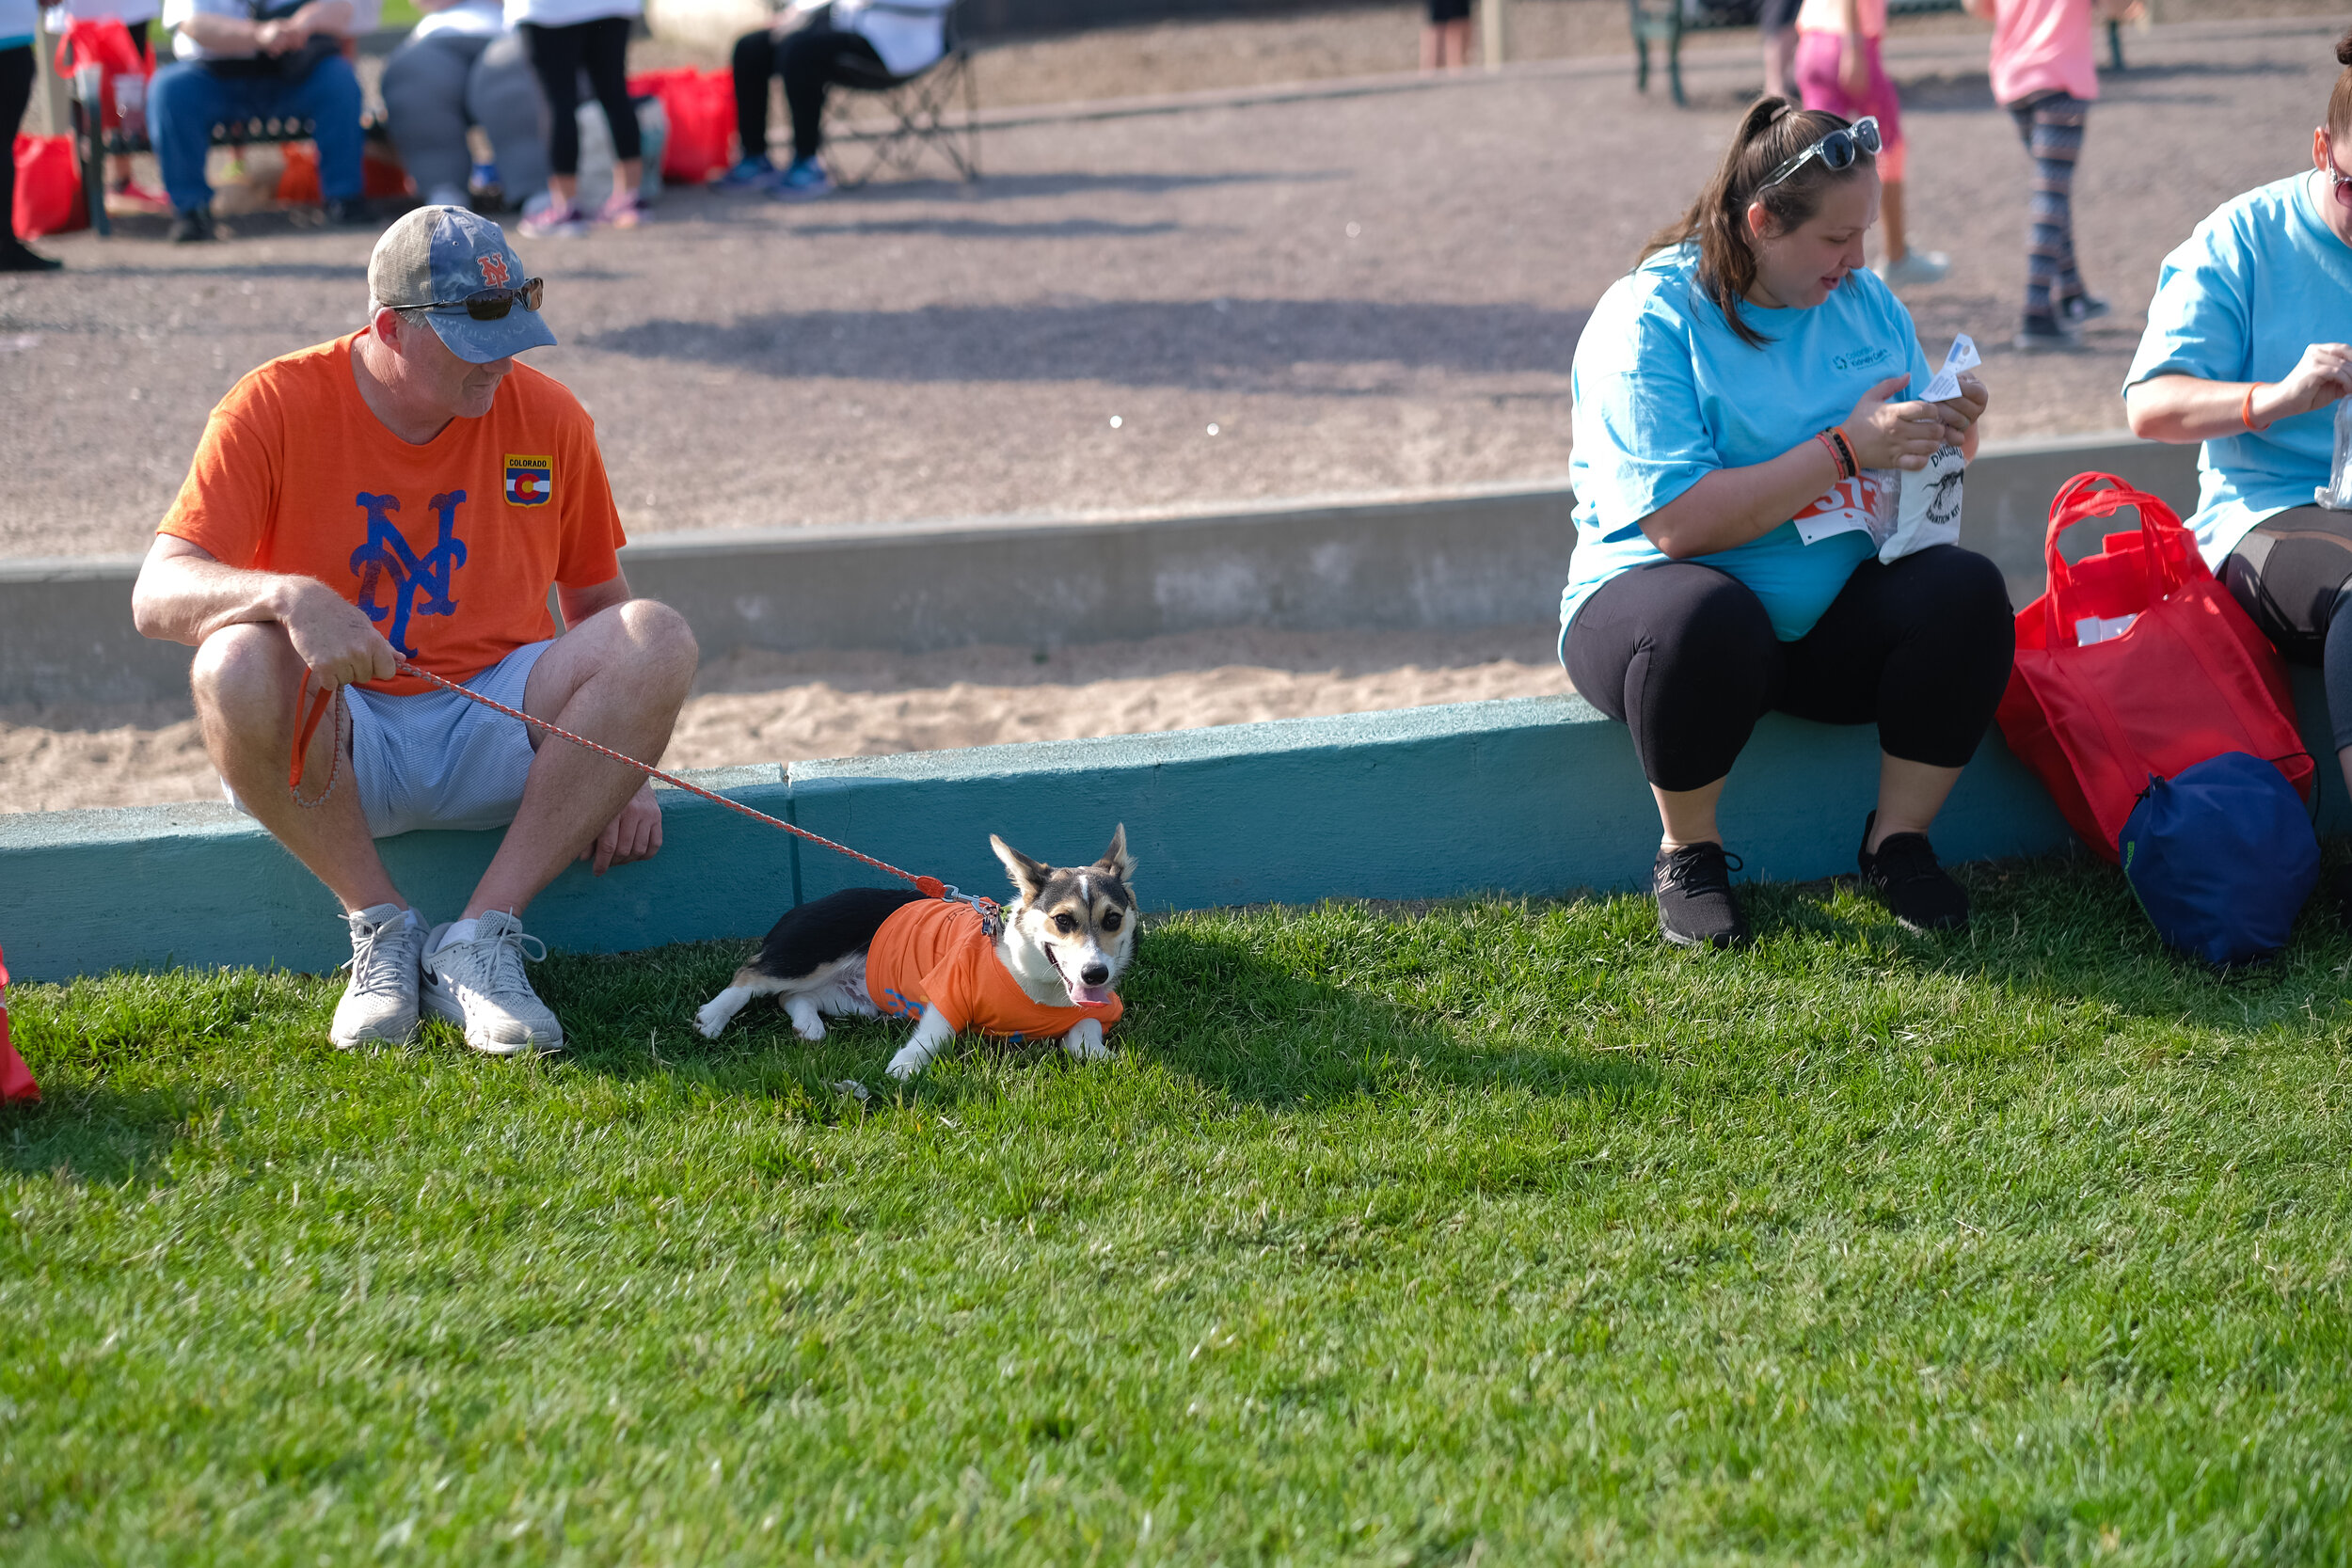 Denver Kidney Walk-164.jpg